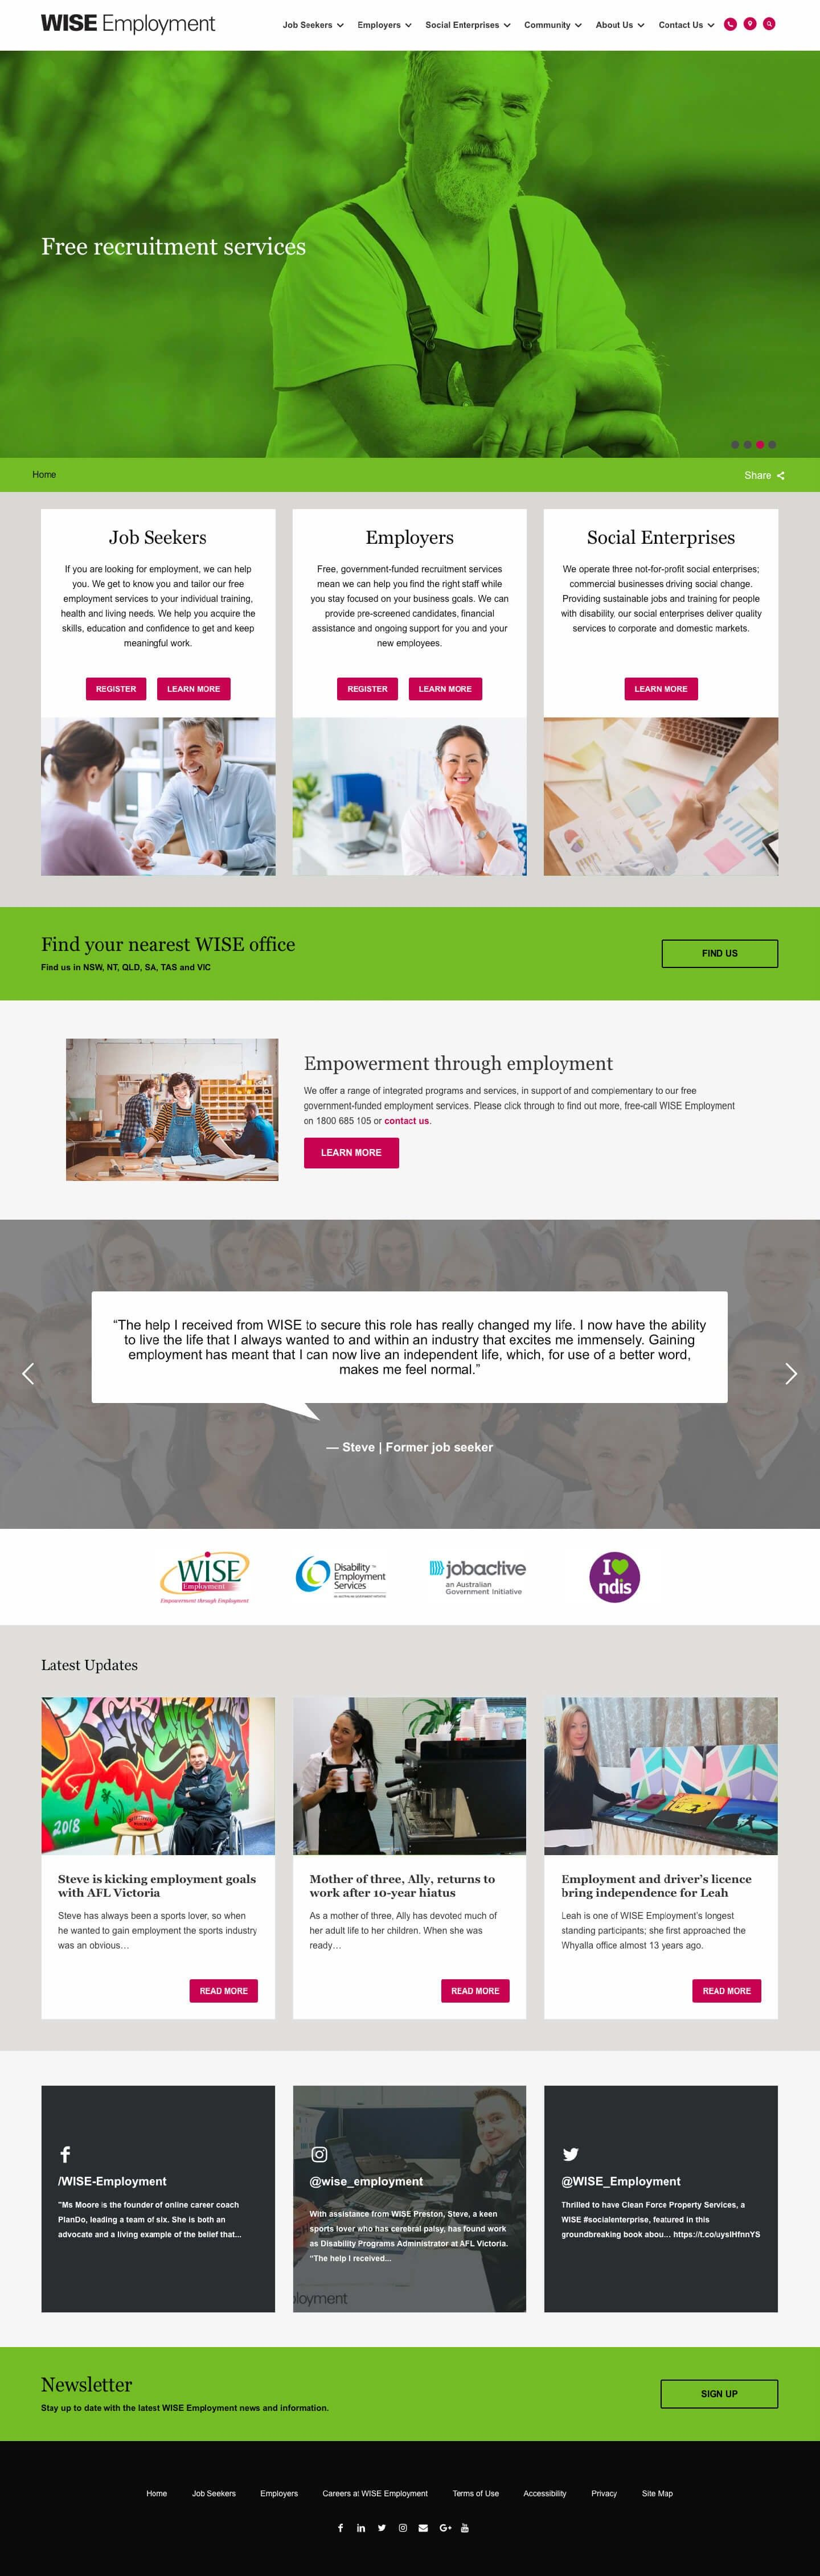 large full vertical preview of the Wise Employment website homepage